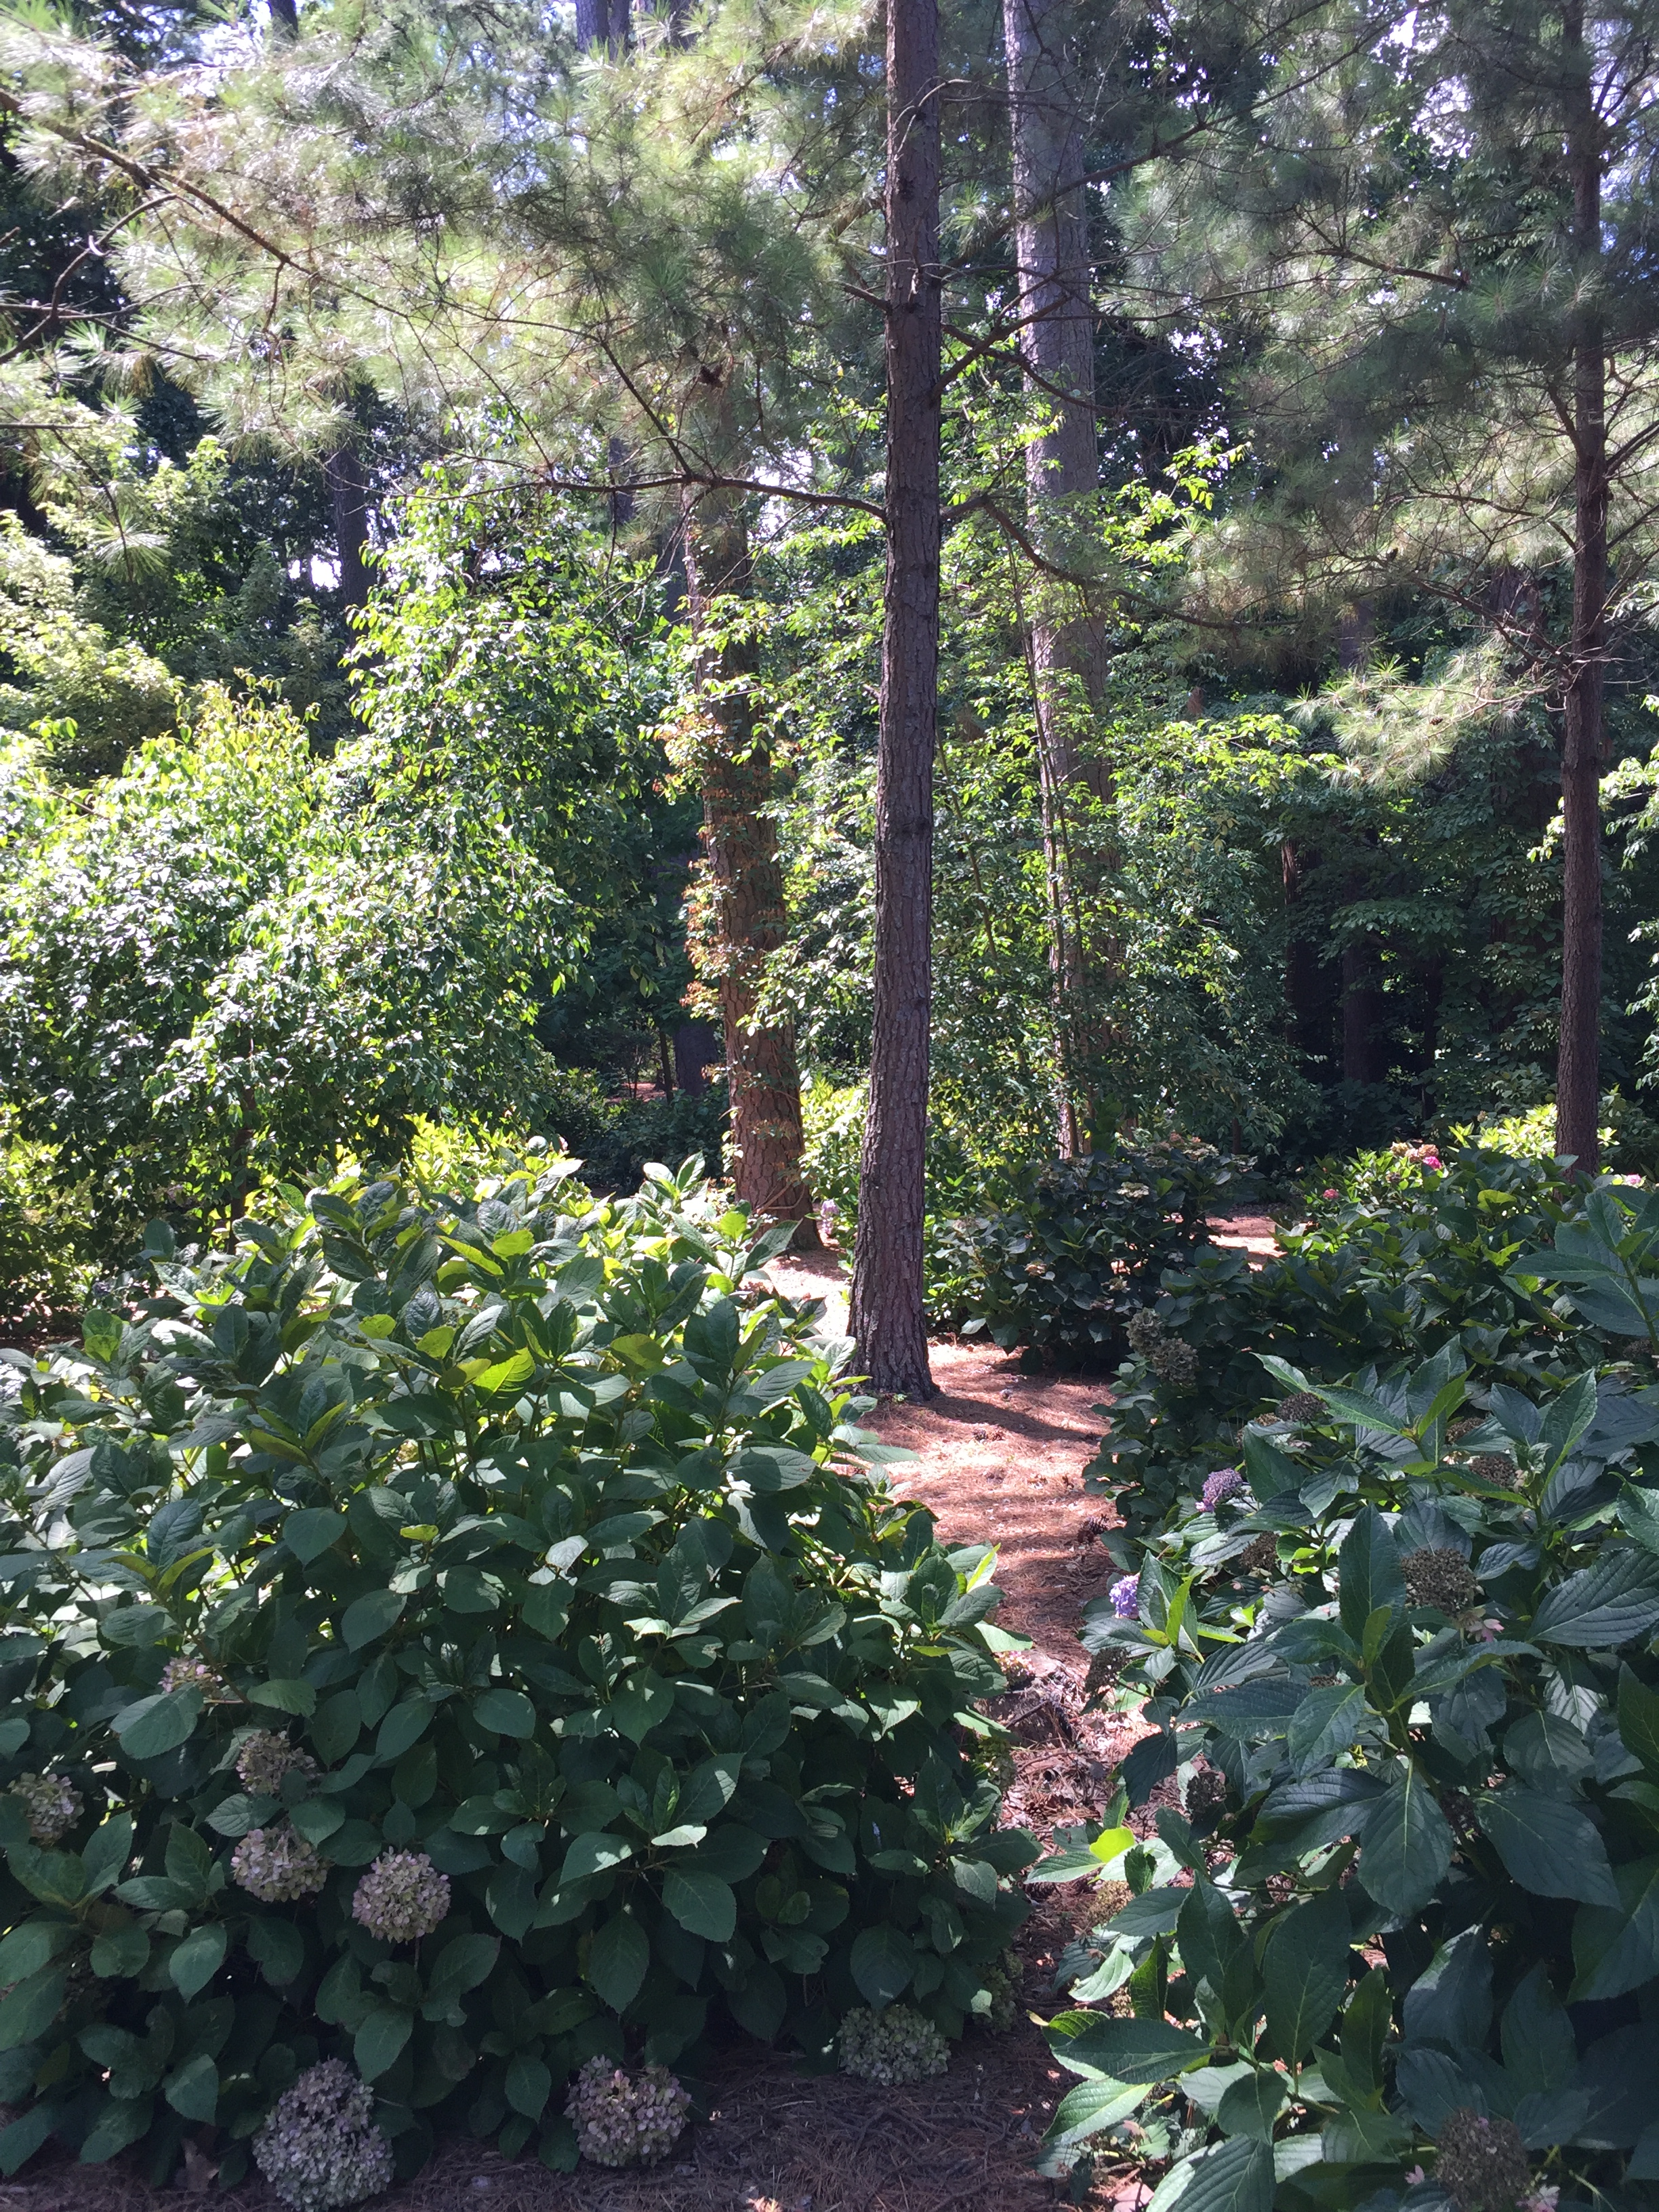 Entrance to the Kaufman Hydrangea Garden, which features both Asian bigleaf and native species. Photo © 2018 Elaine Mills.